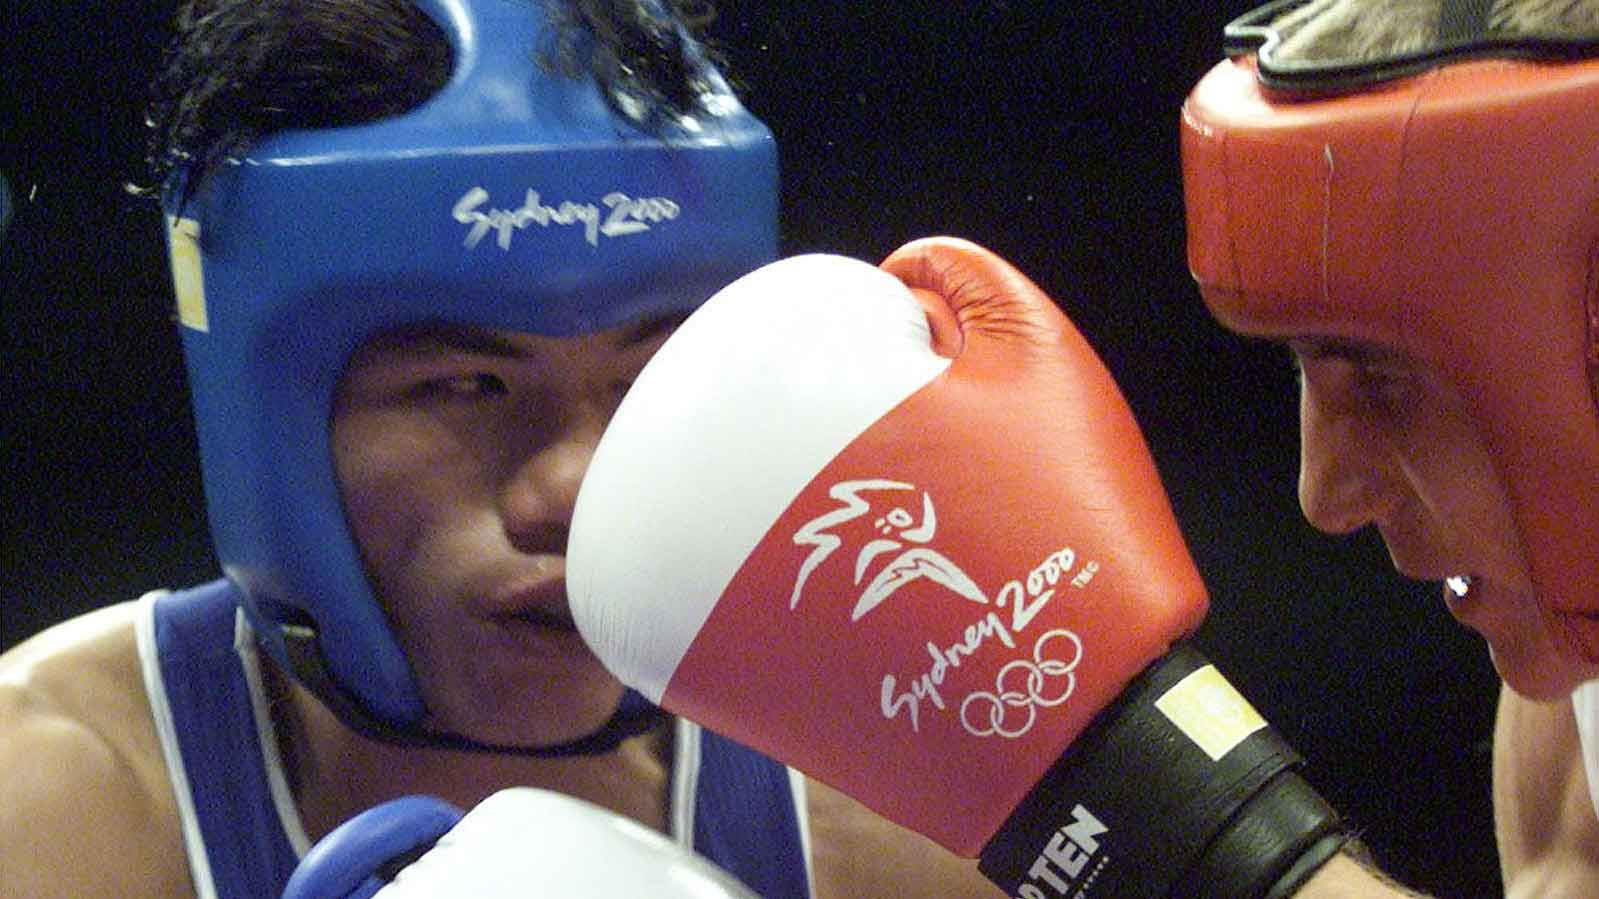 Indian boxing stalwart Dingko Singh has tested positive for coronavirus, after returning home to Imphal following his cancer treatment in Delhi.